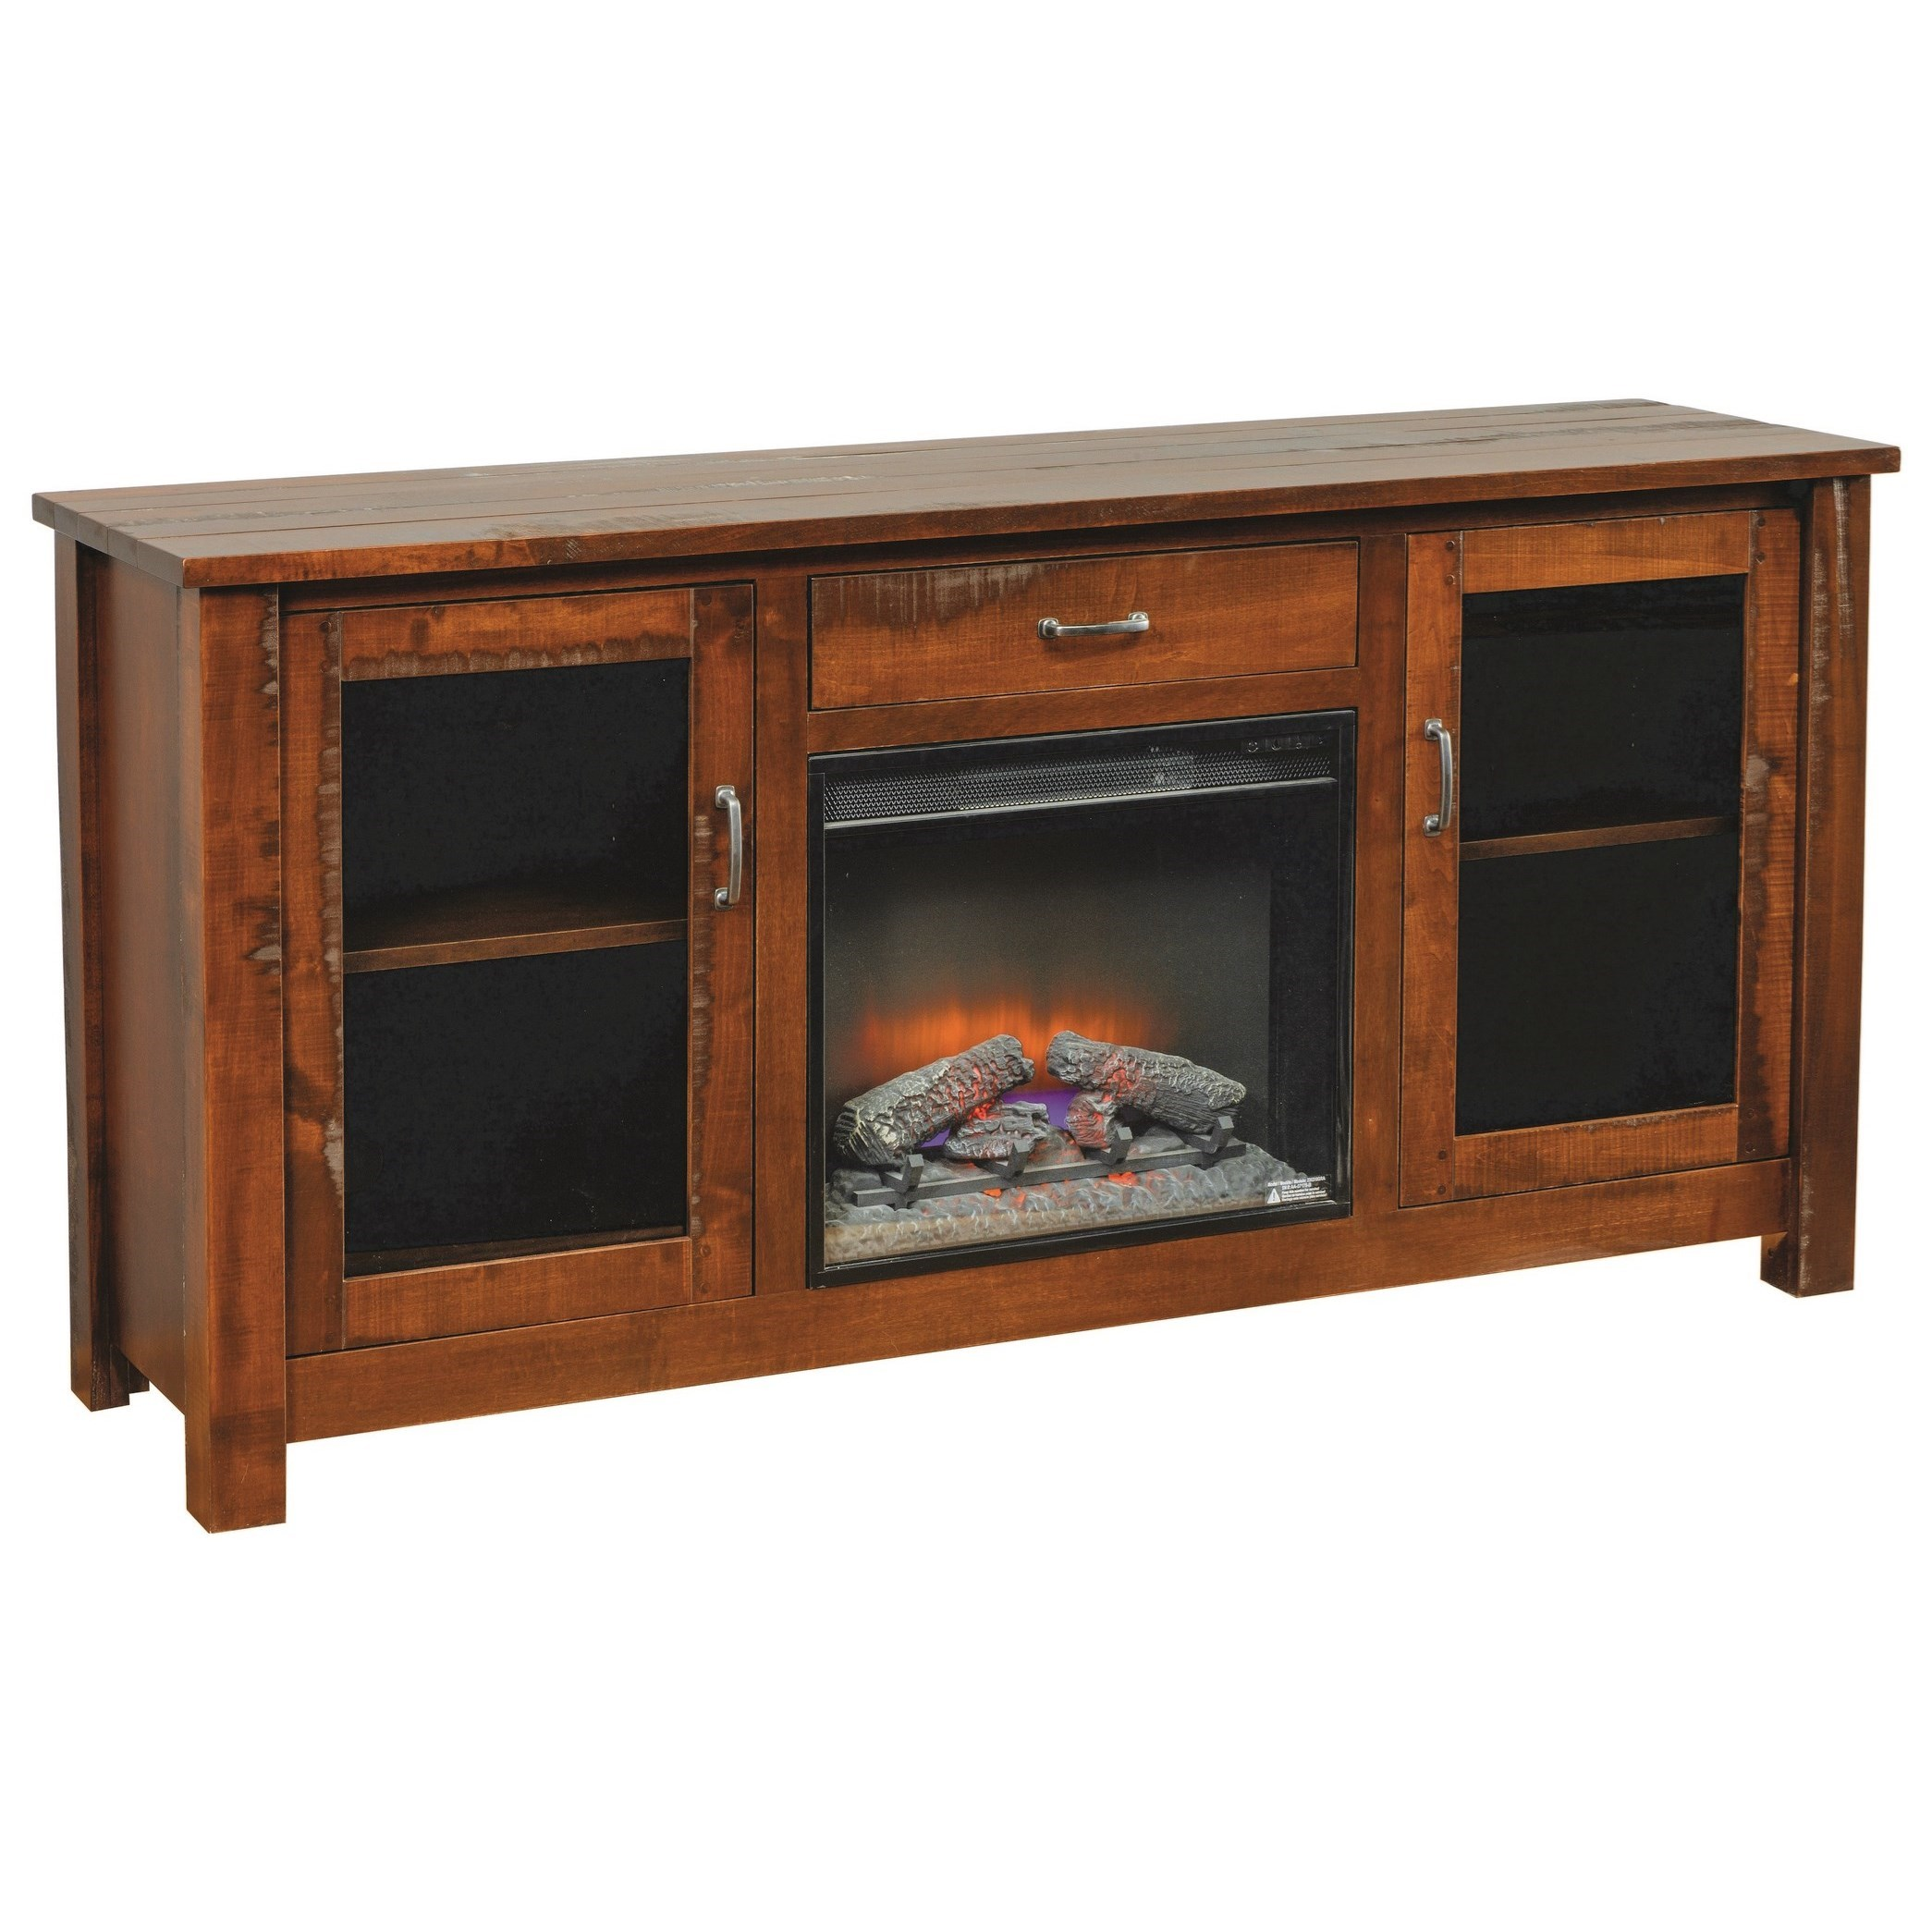 Entertainment Fireplace TV Stand by INTEG Wood Products at Saugerties Furniture Mart